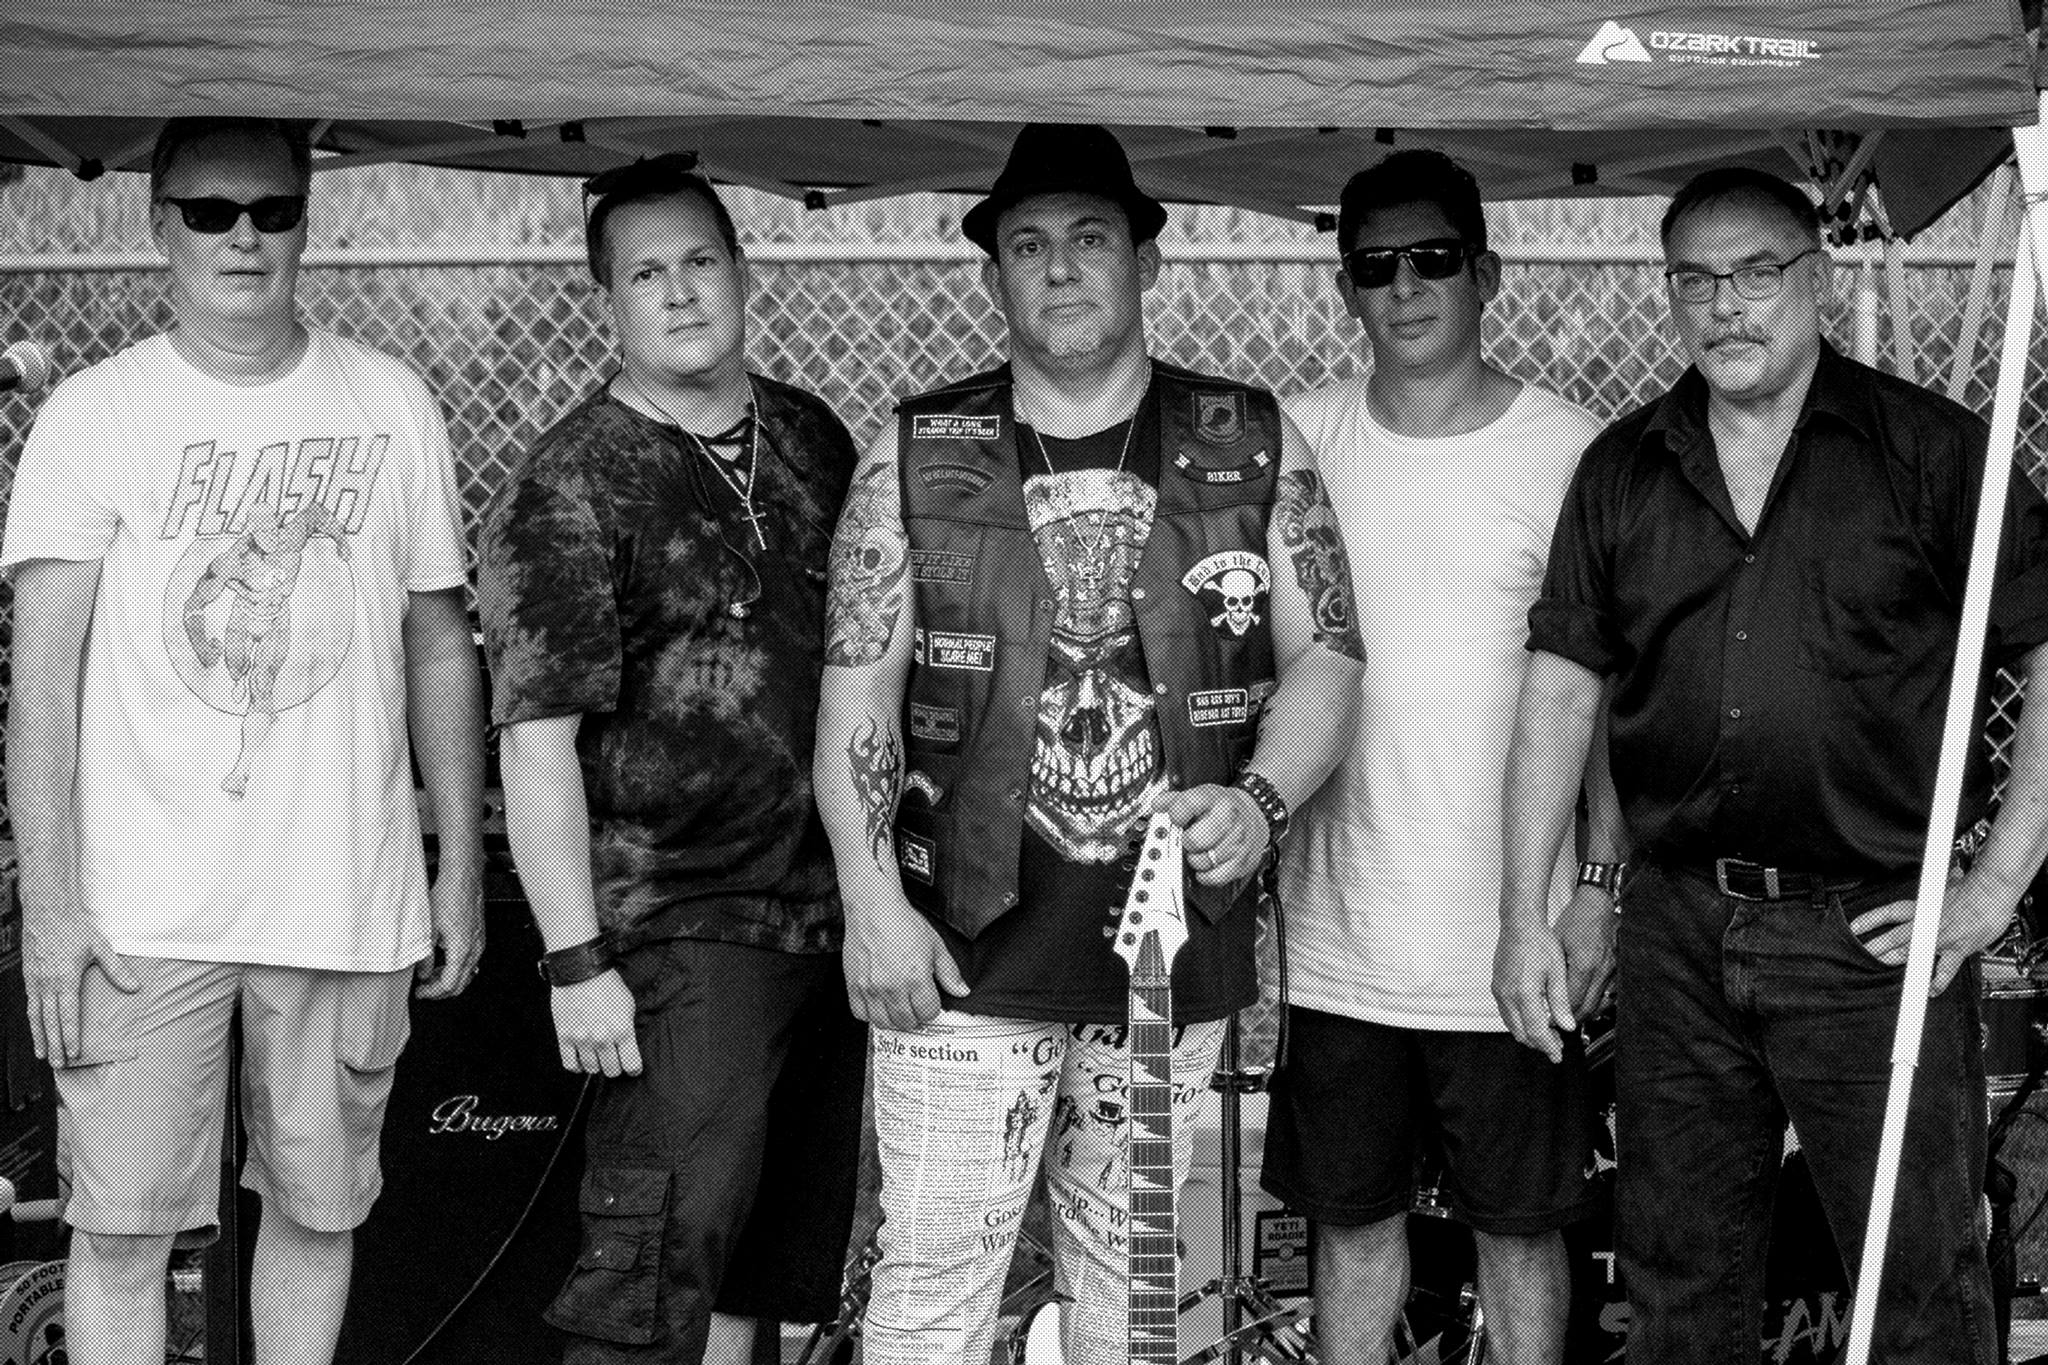 Johnny 9 and the Scream at The Montage Music Hall Nov 24th 8:30PM